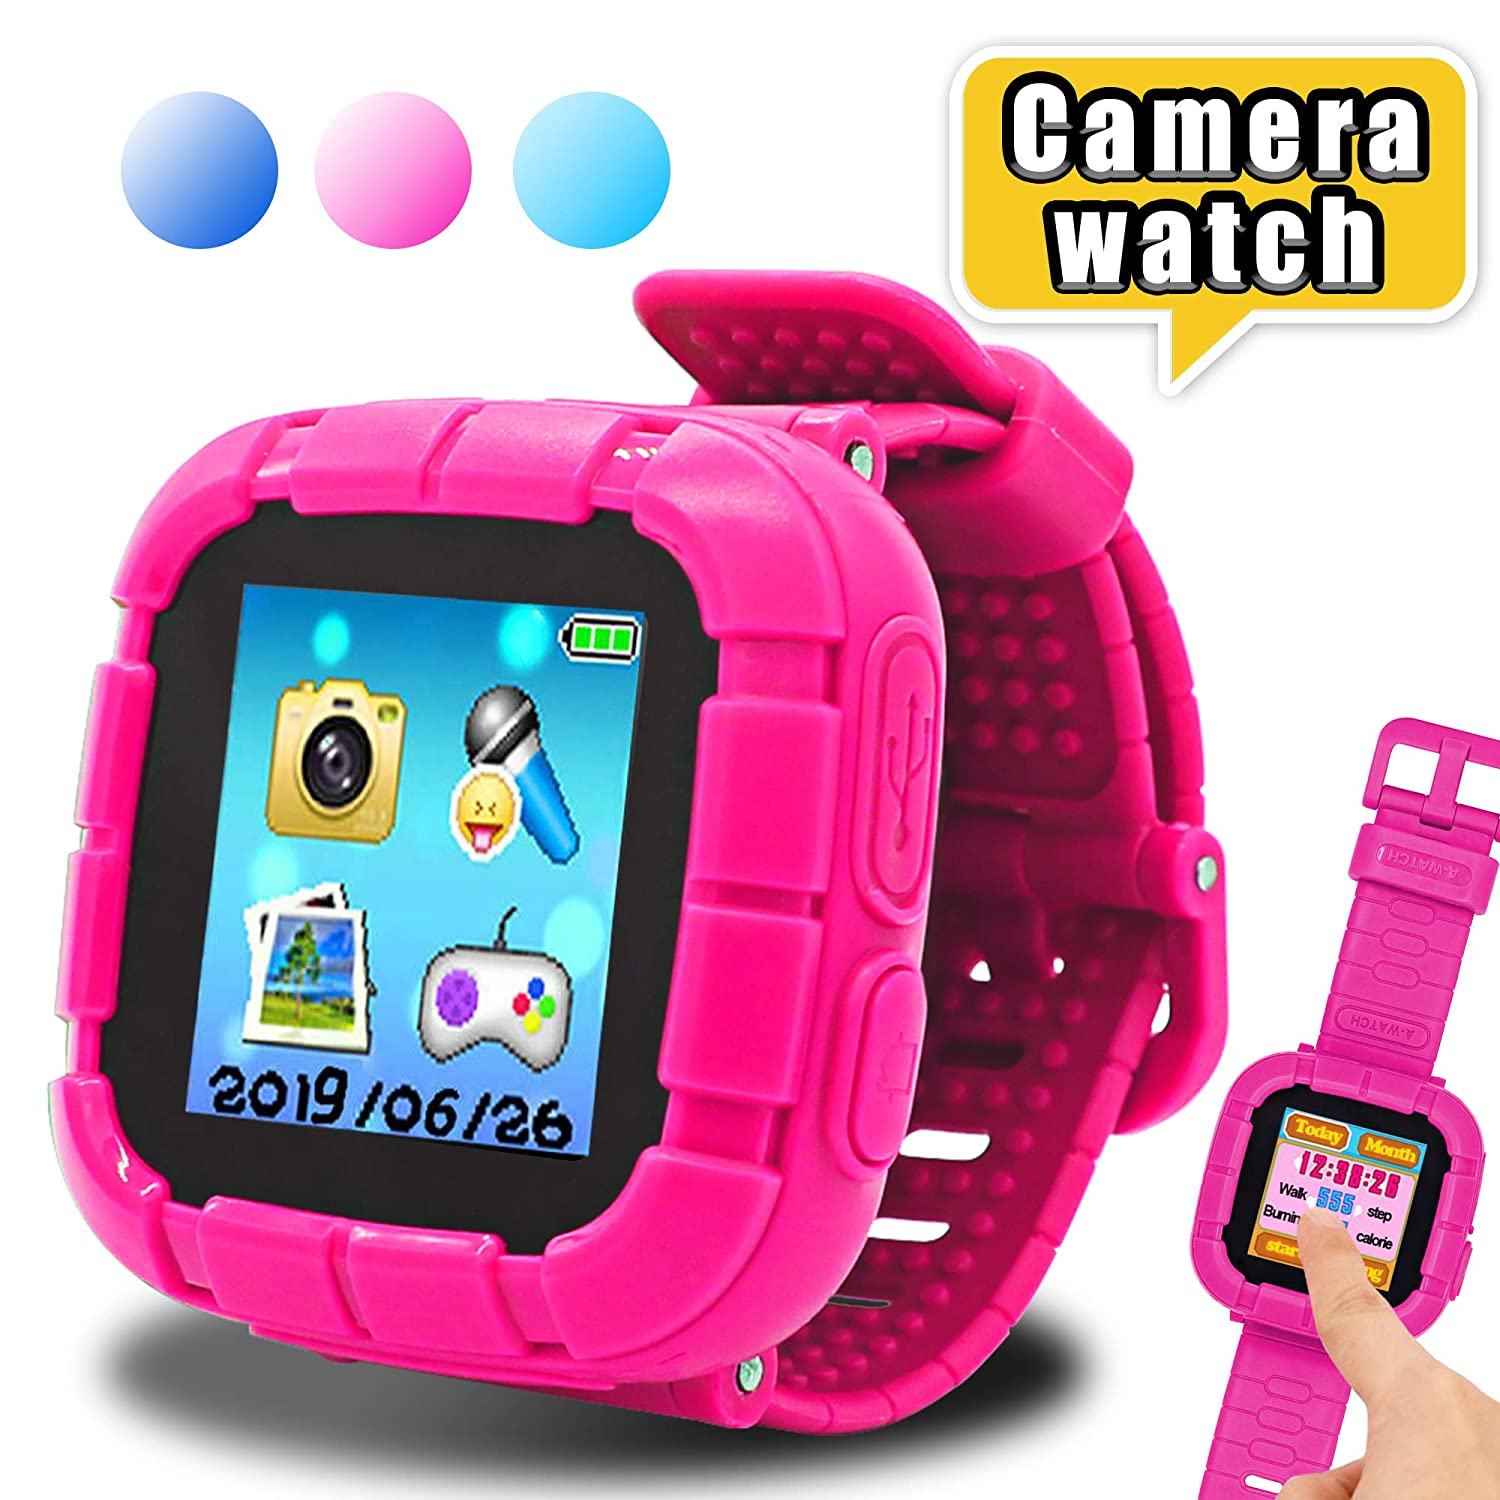 Yehtta Gifts for 3-8 Year Old Girls Smart Watch for Kids Samrtwatch Touchscreen Kids Watches Girls Alarm Clock Electronic Toys for Kids Pink